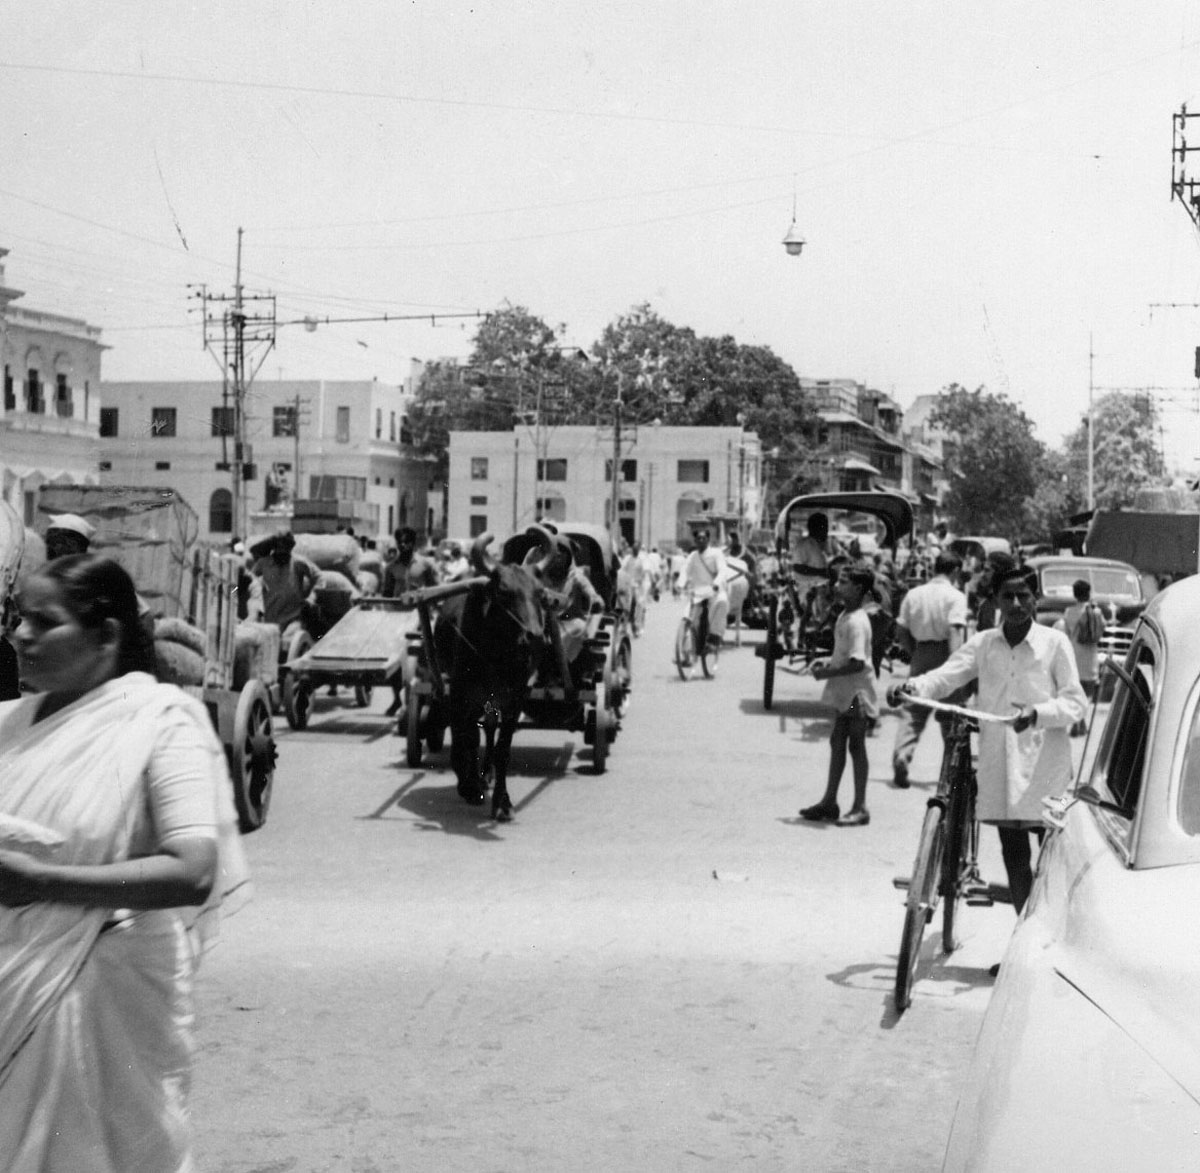 Streets of Old Delhi - 1954